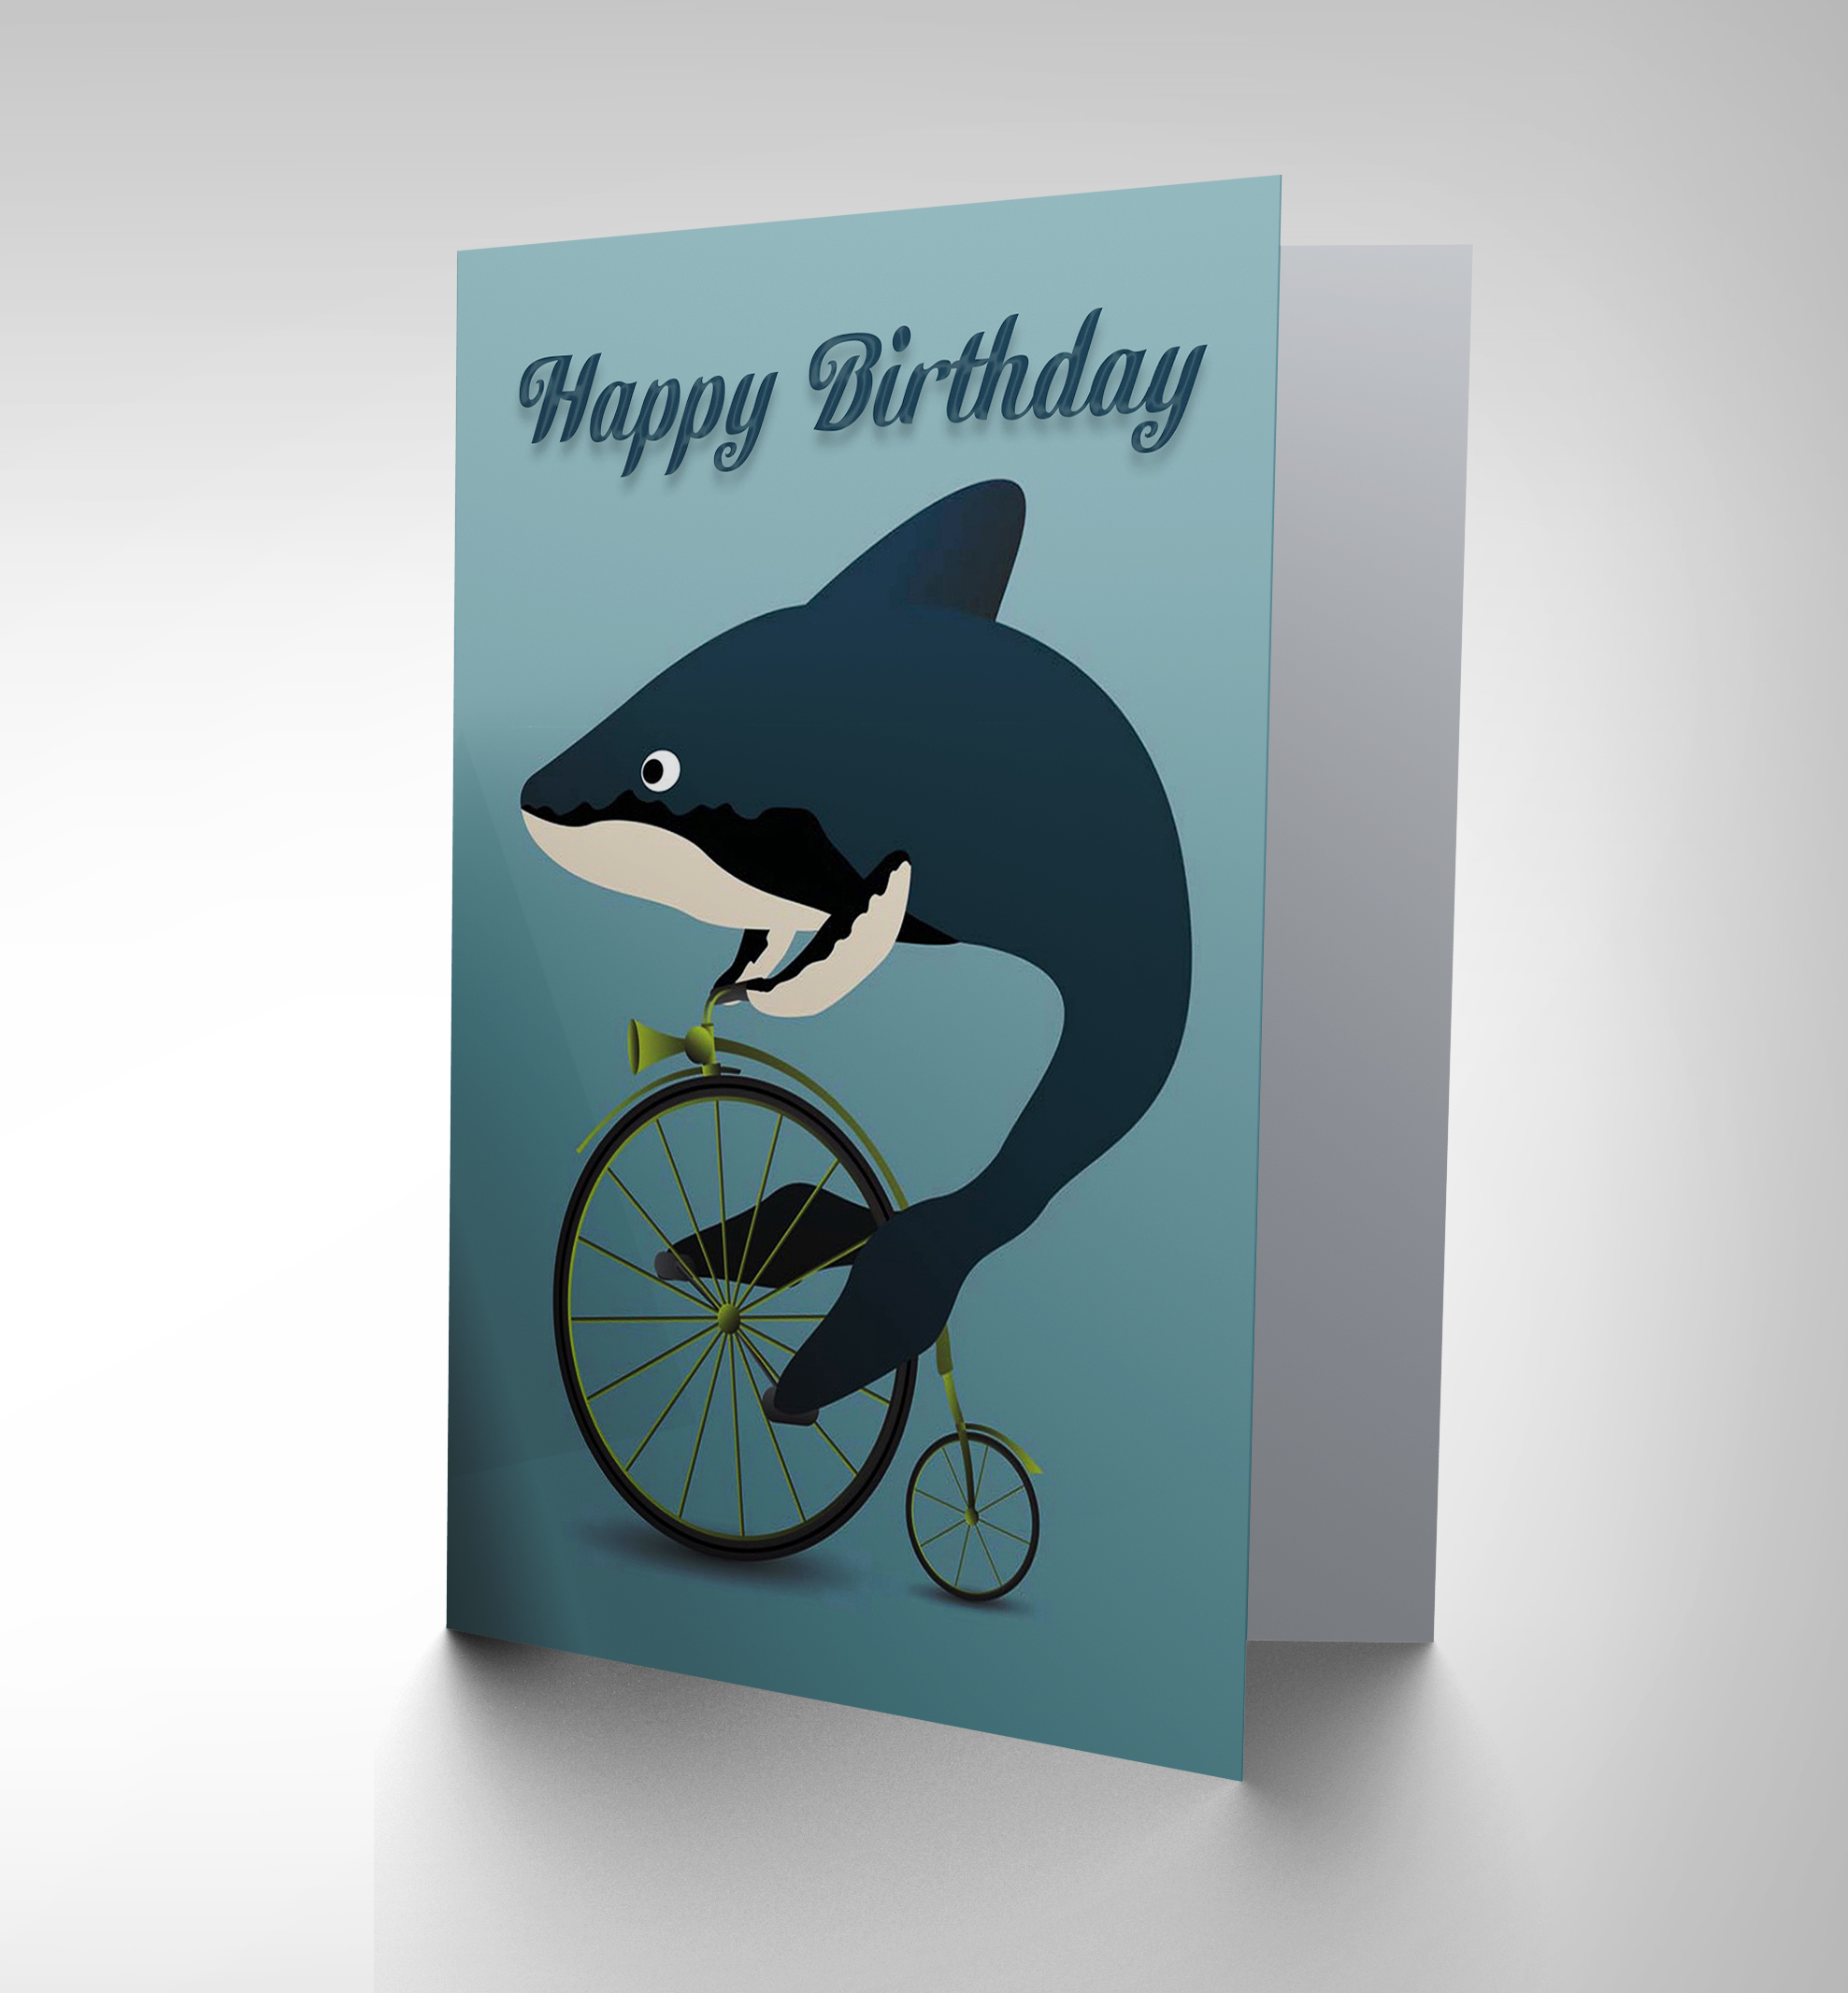 HAPPY BIRTHDAY WHALE SHARK BICYCLE PENNY FARTHING ABSURD